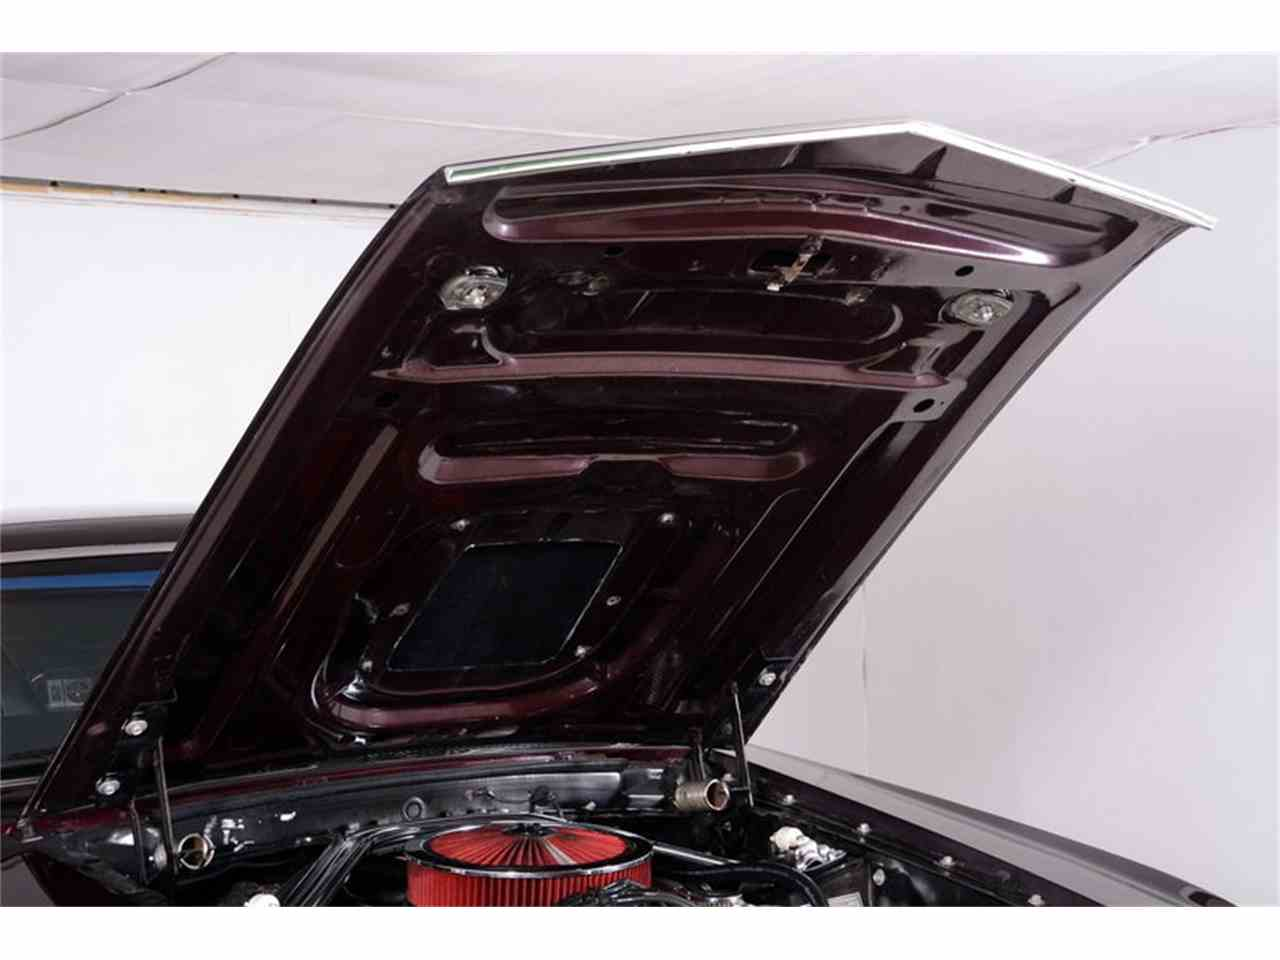 Large Picture of '70 Ford Mustang Mach 1 Pro Touring located in Illinois - $41,998.00 - L8H9